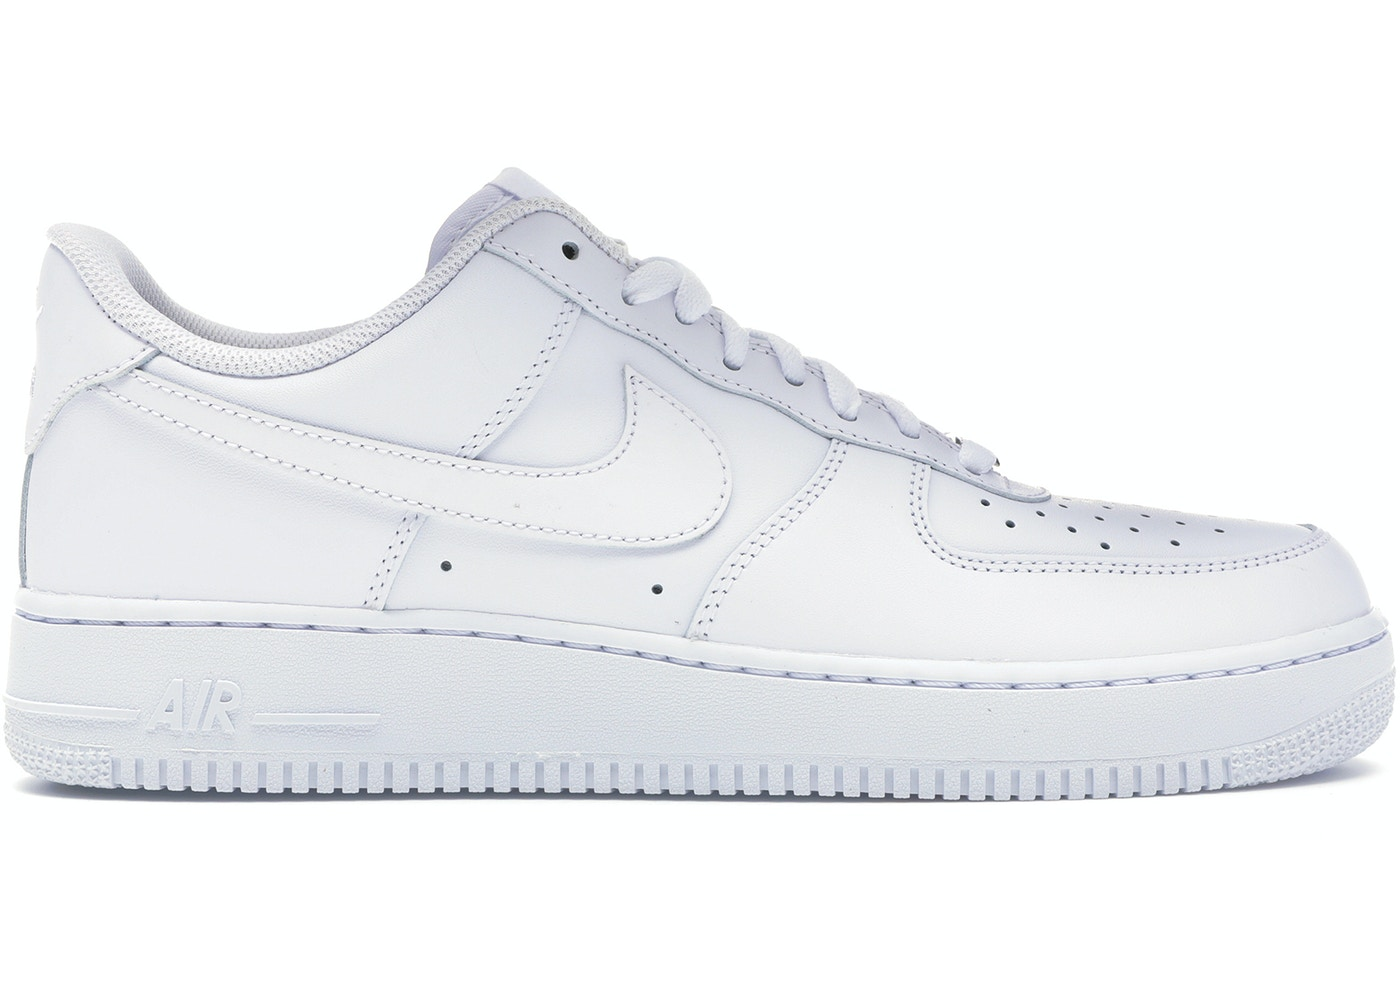 super popular b3ec3 14860 Buy Nike Air Force 1 Shoes  Deadstock Sneakers